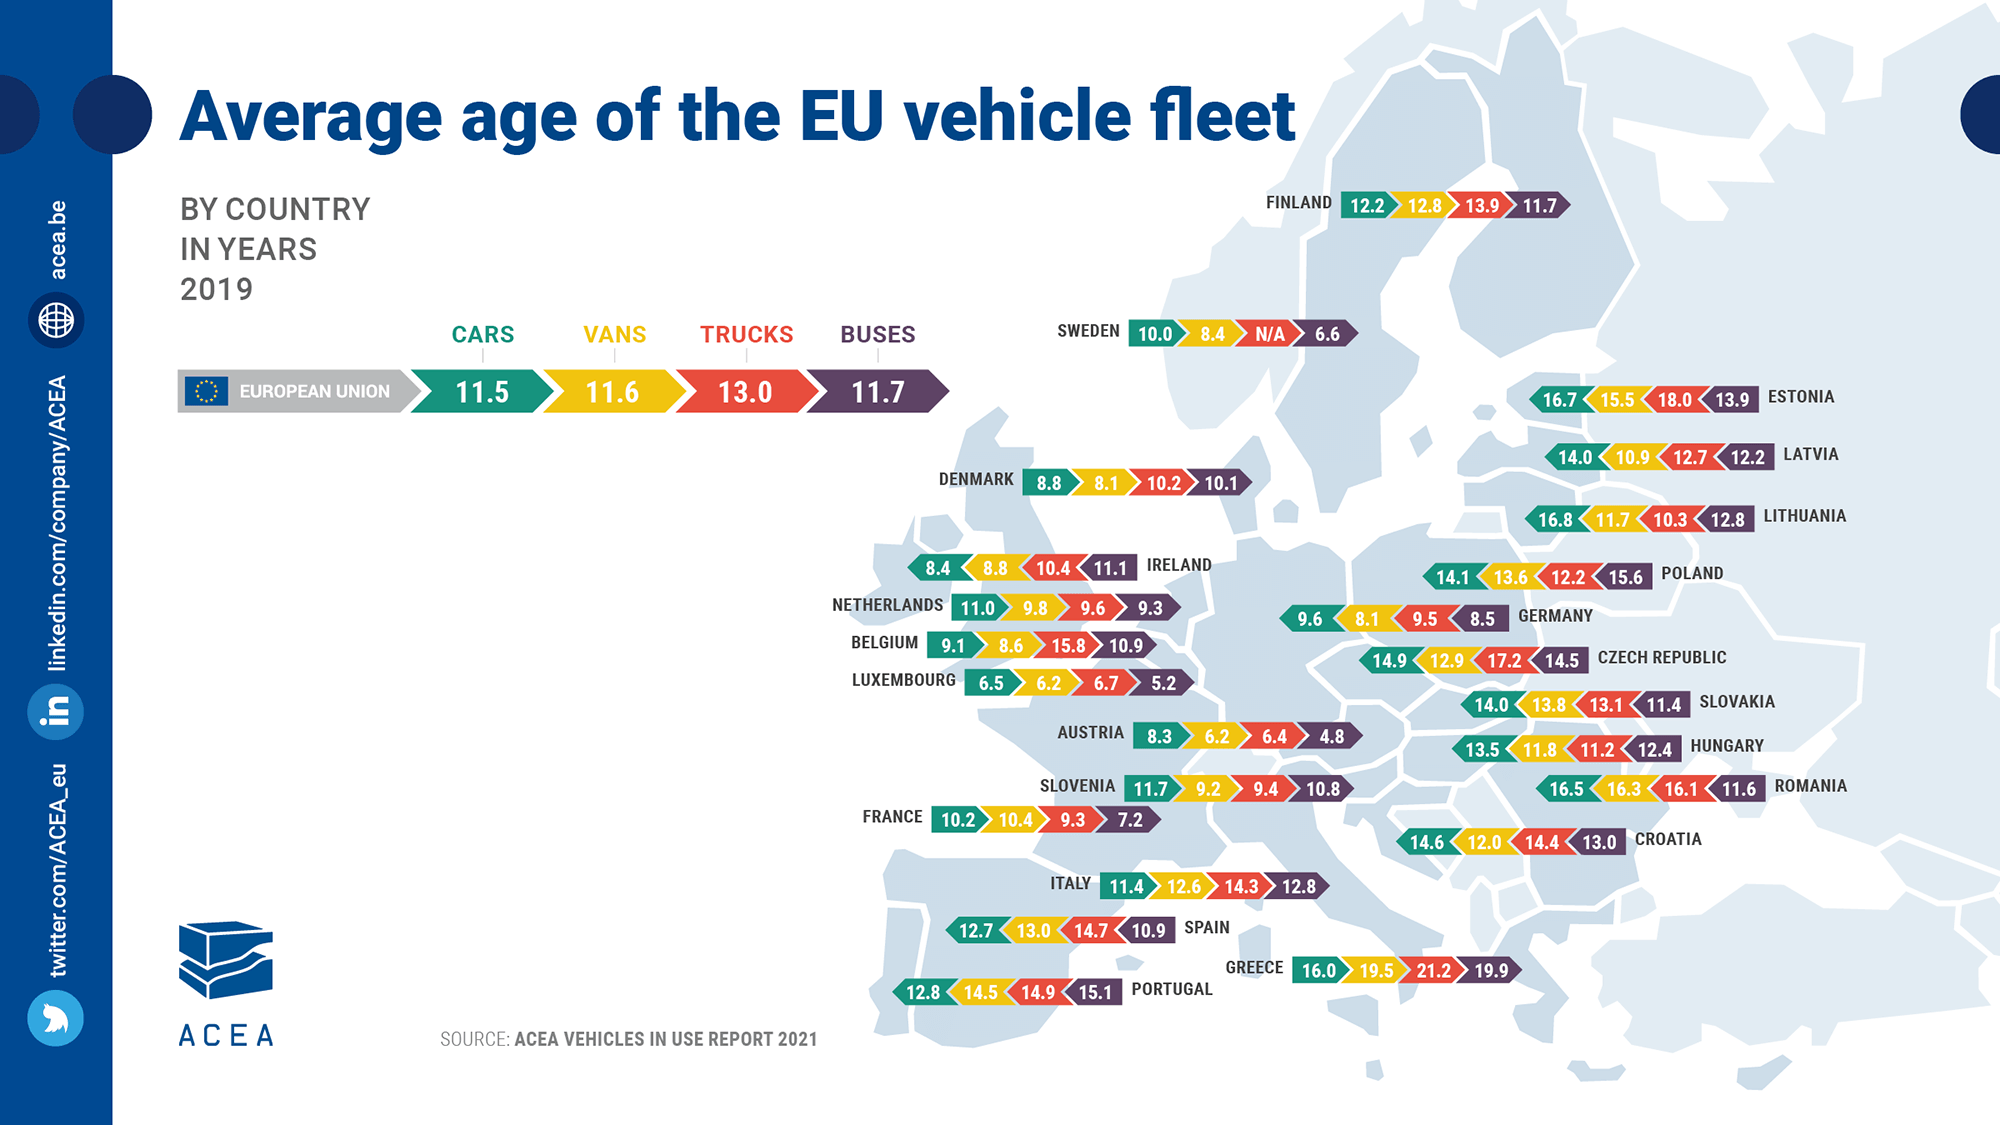 Average age of the EU vehicle fleet, by EU country